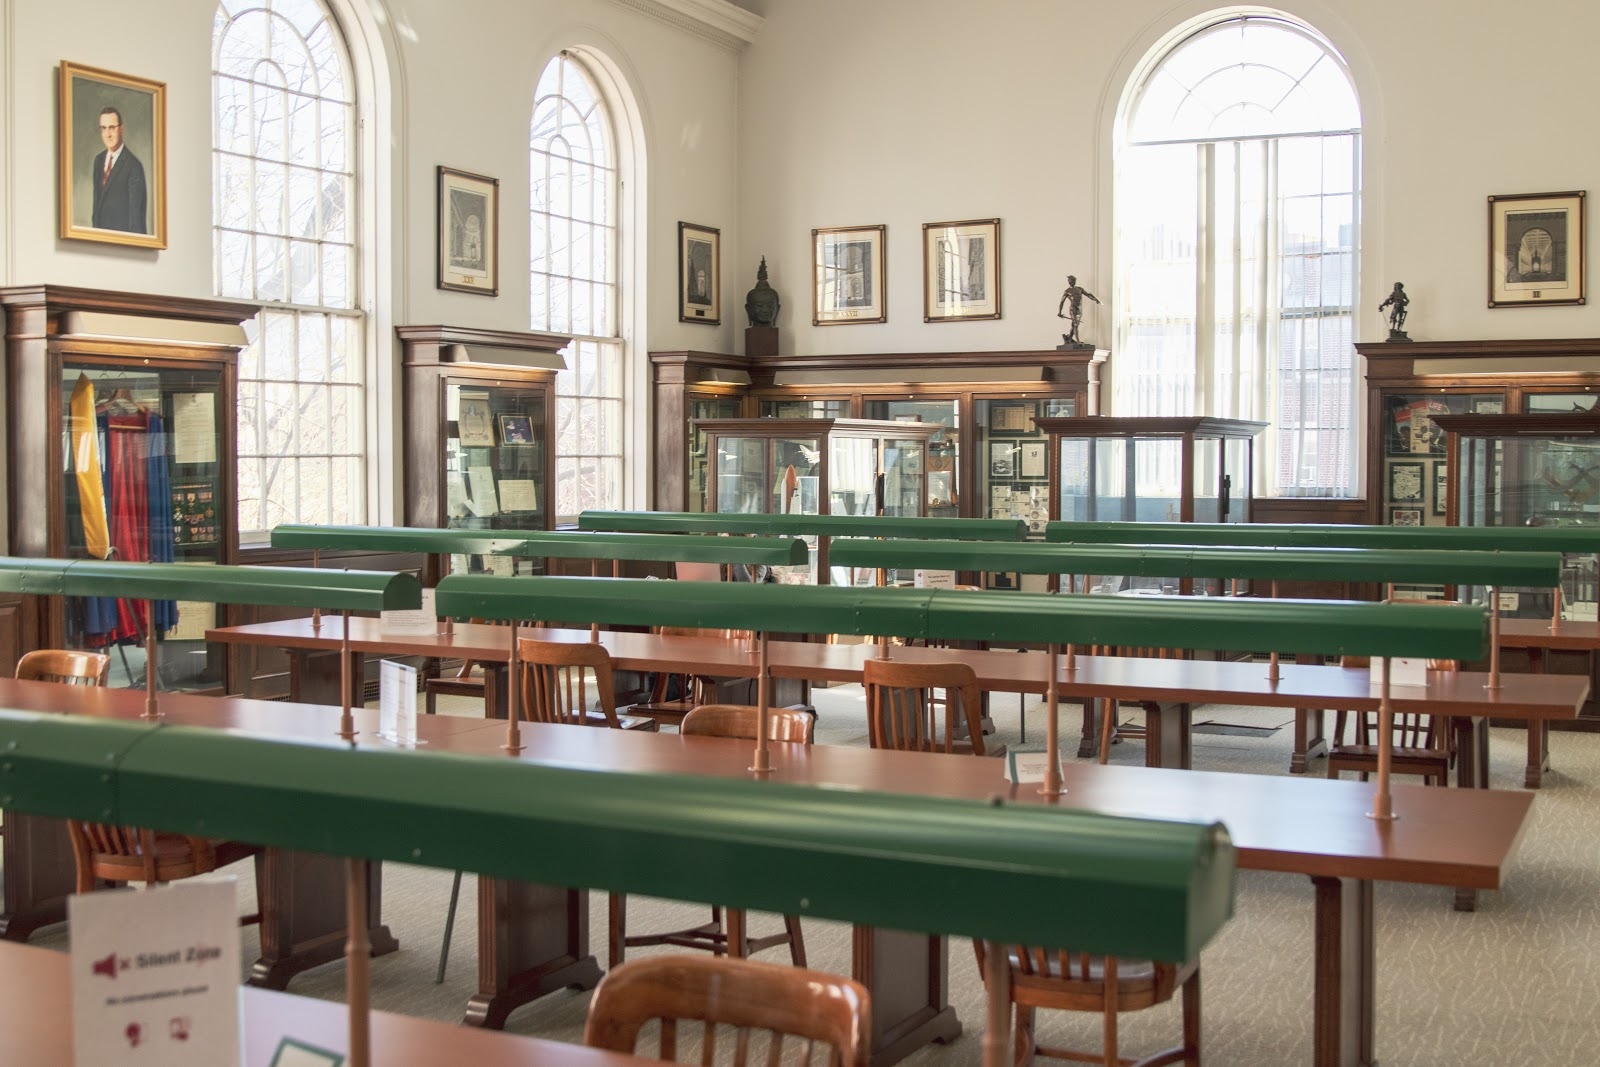 Library with wooden tables and wooden chairs